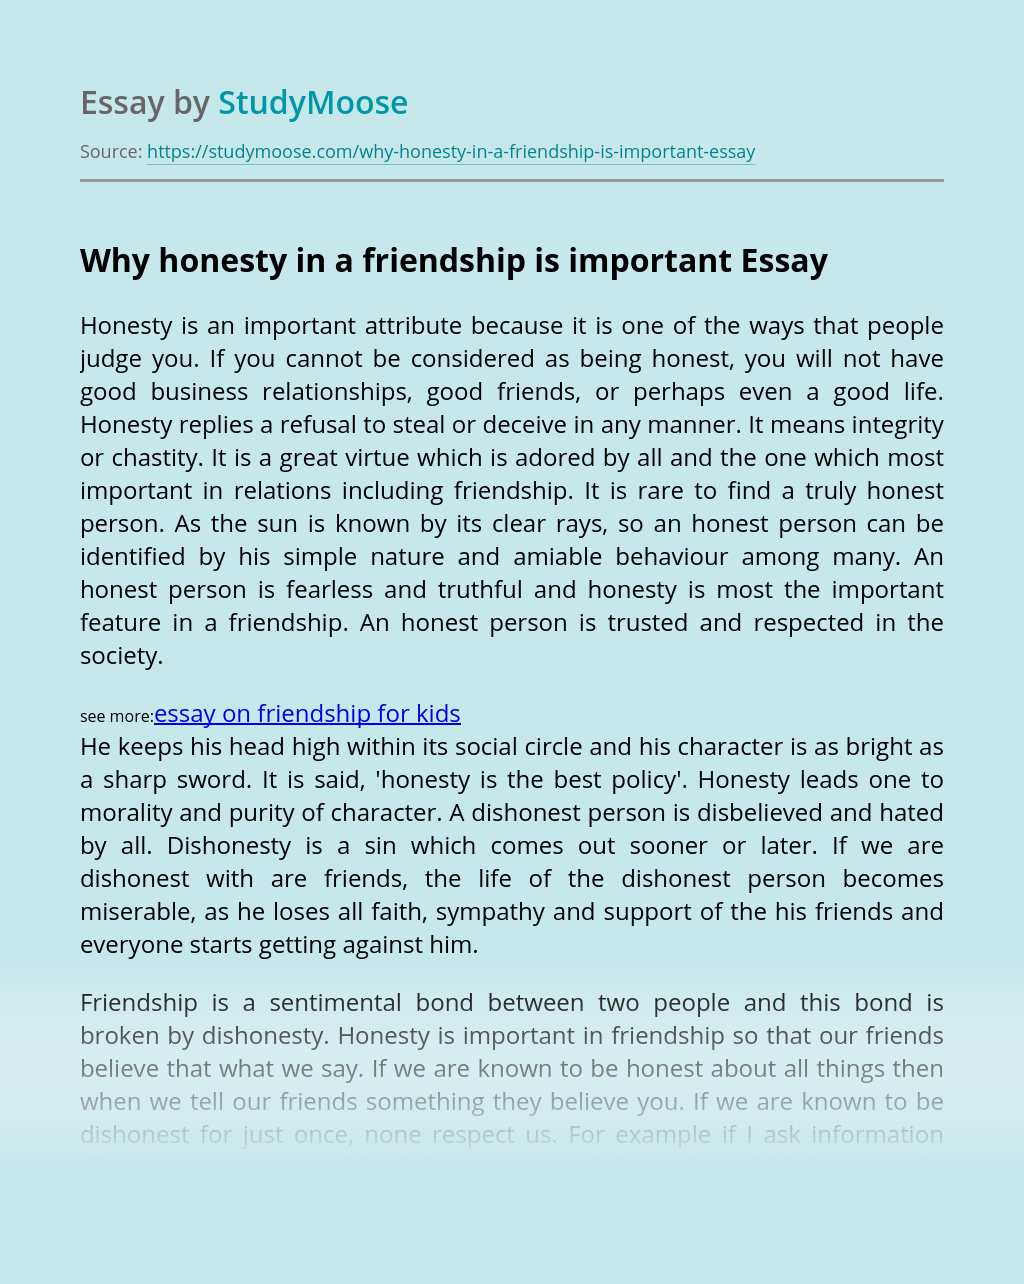 Why honesty in a friendship is important